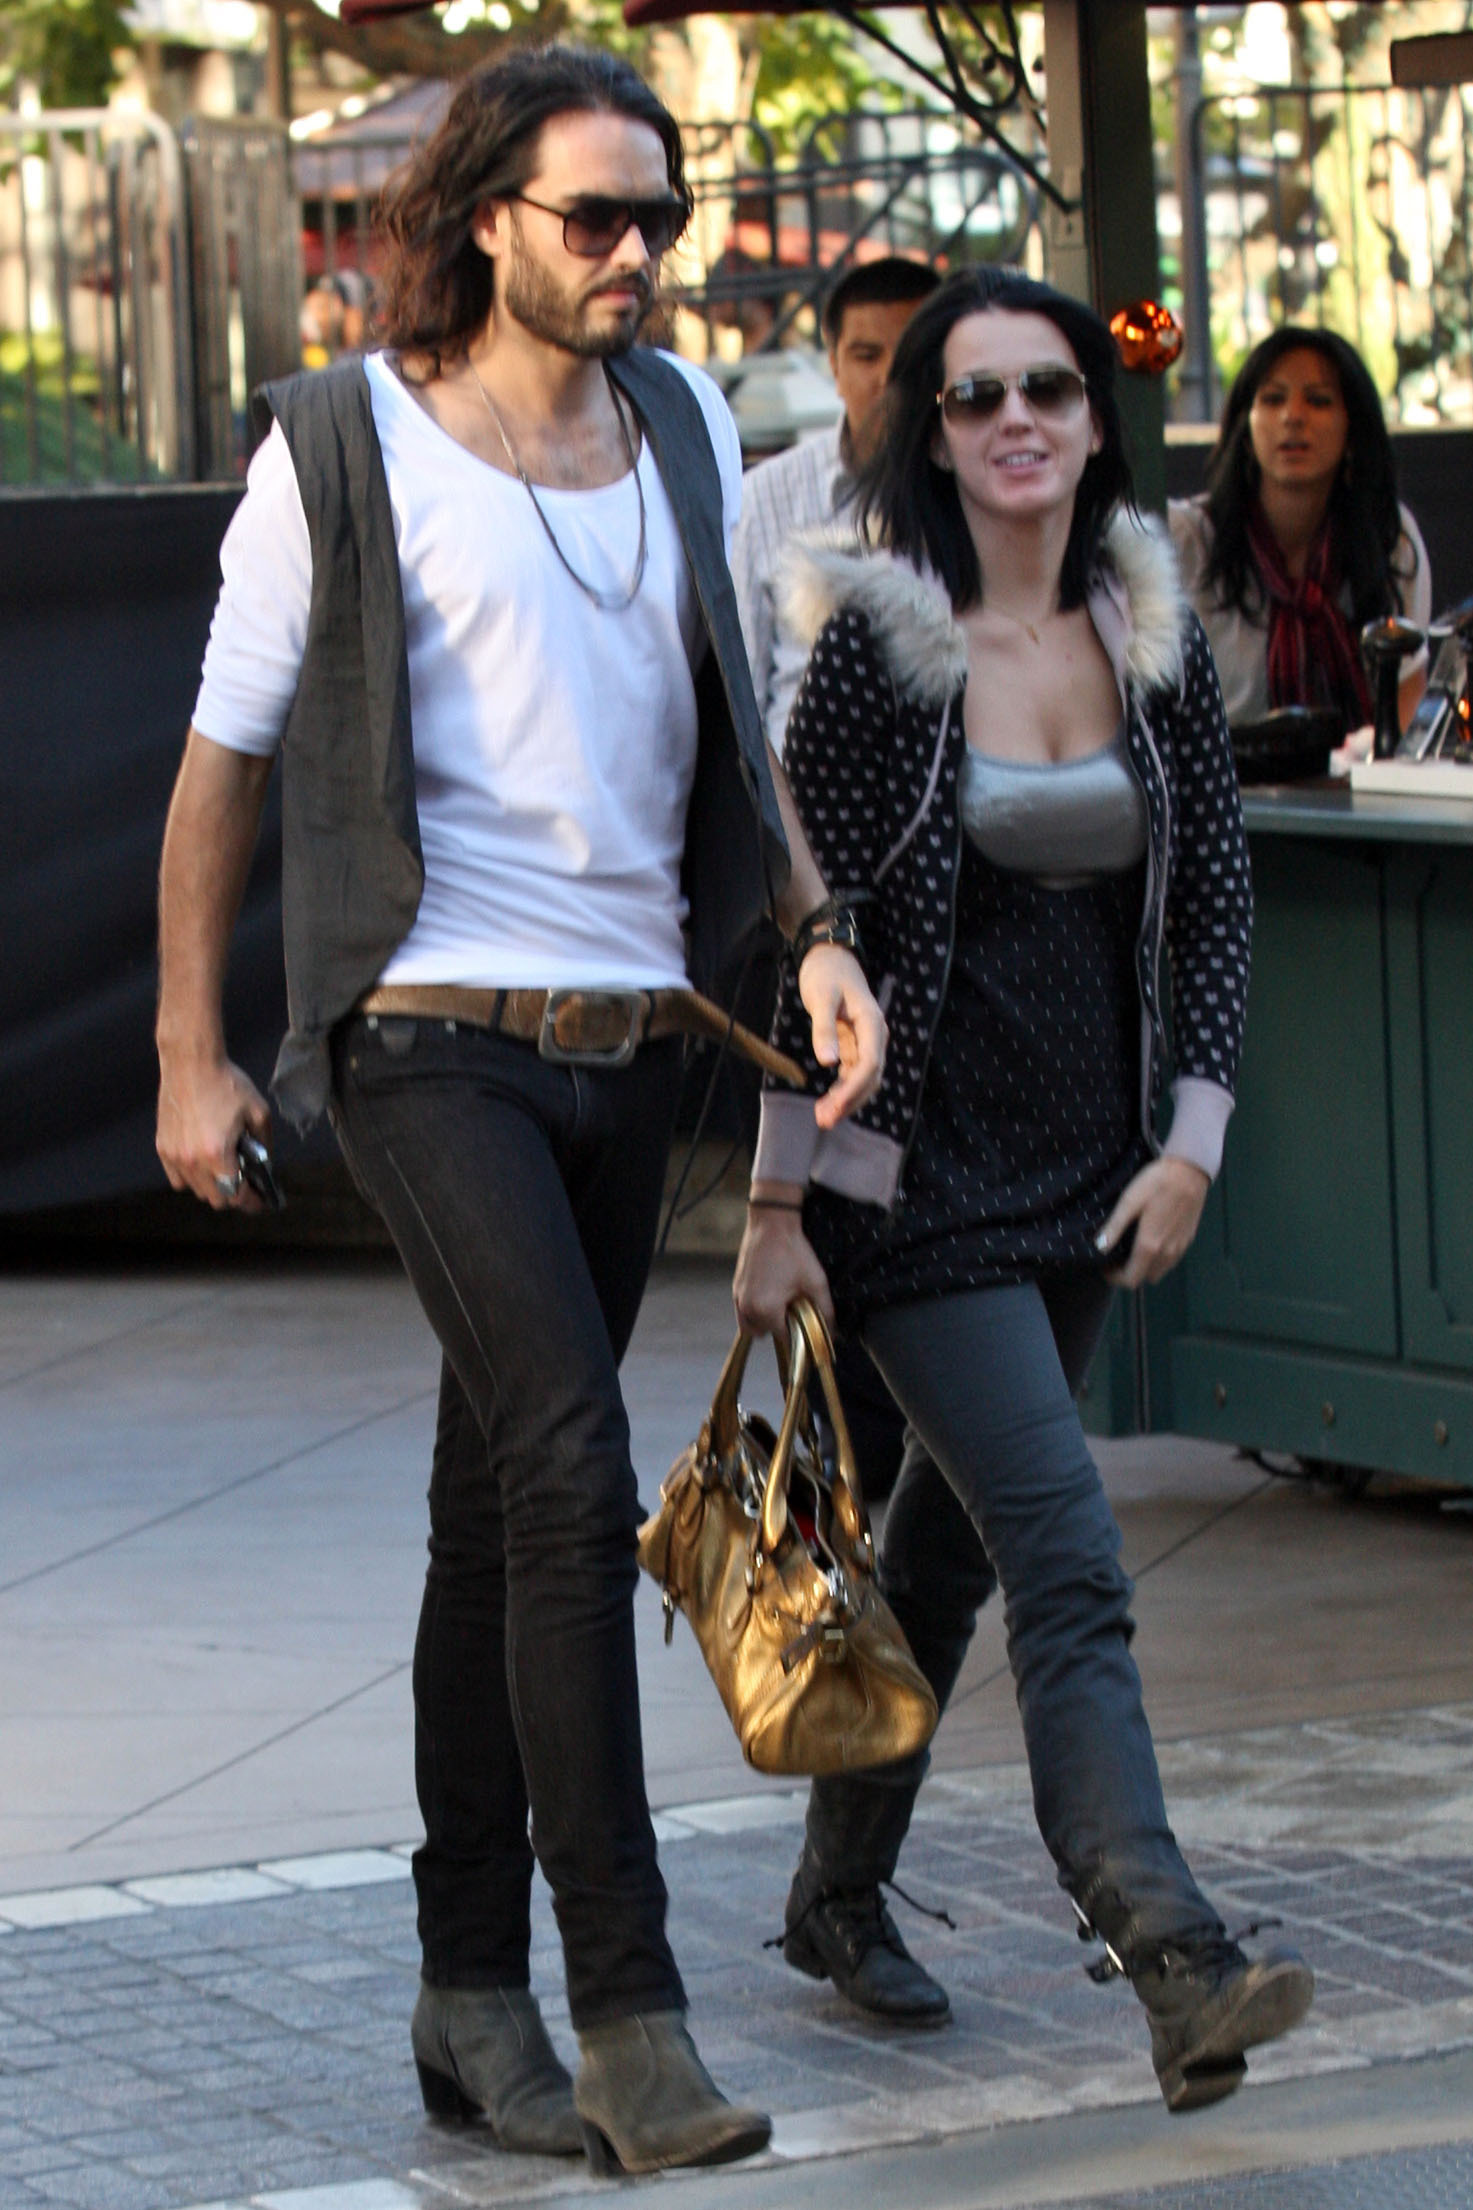 Uh-oh! Katy Katy Perry & Russell Brand Headed for Divorce!